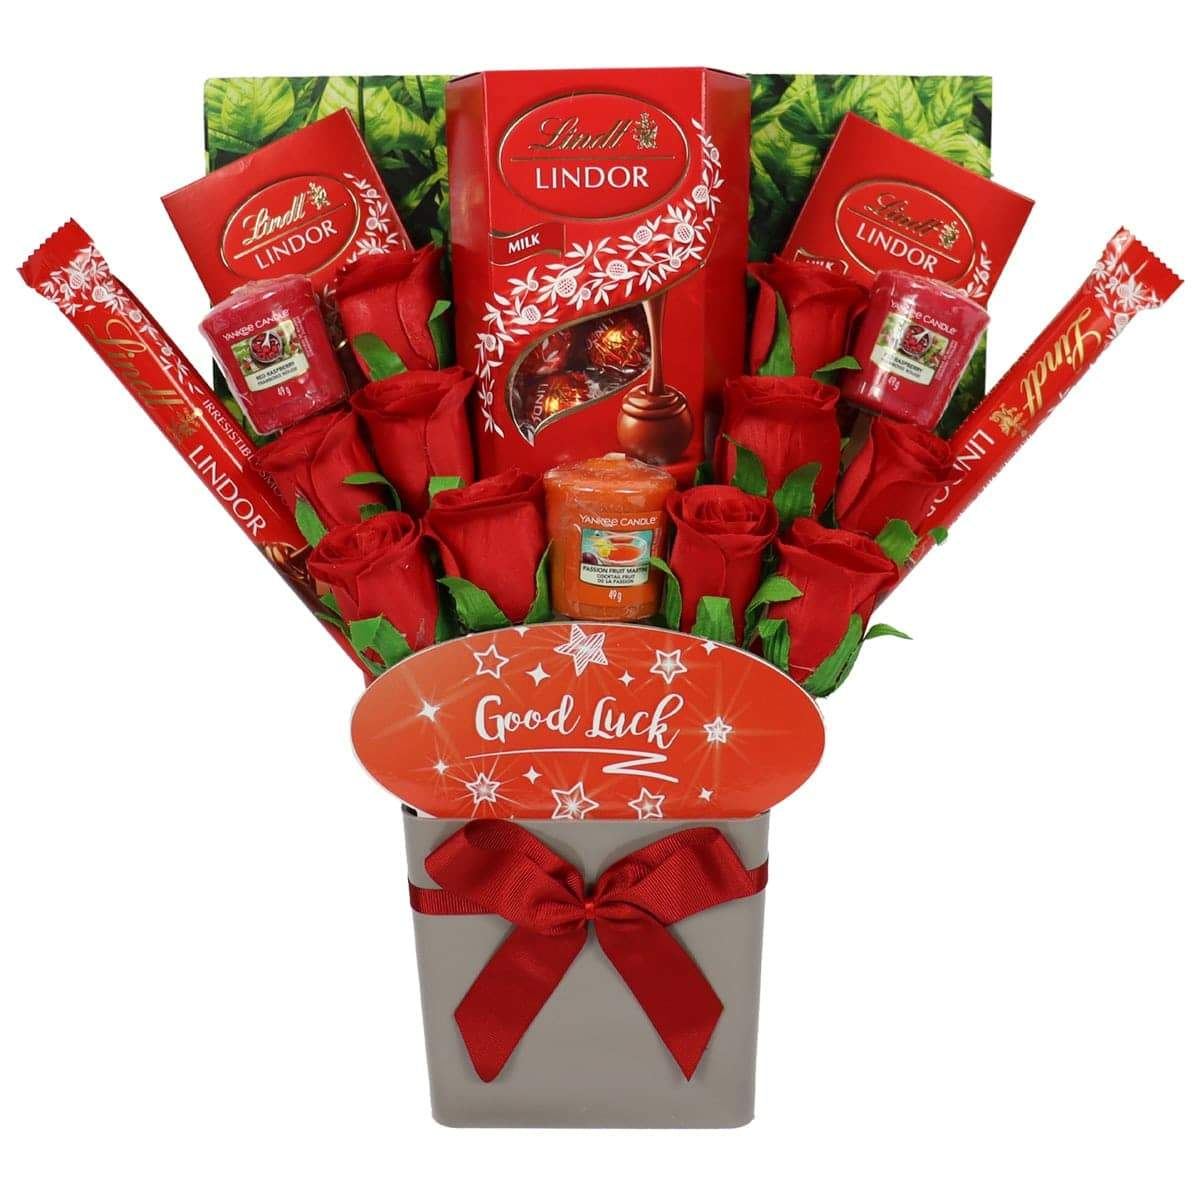 The Good Luck Yankee Candle and Red Rose Bouquet